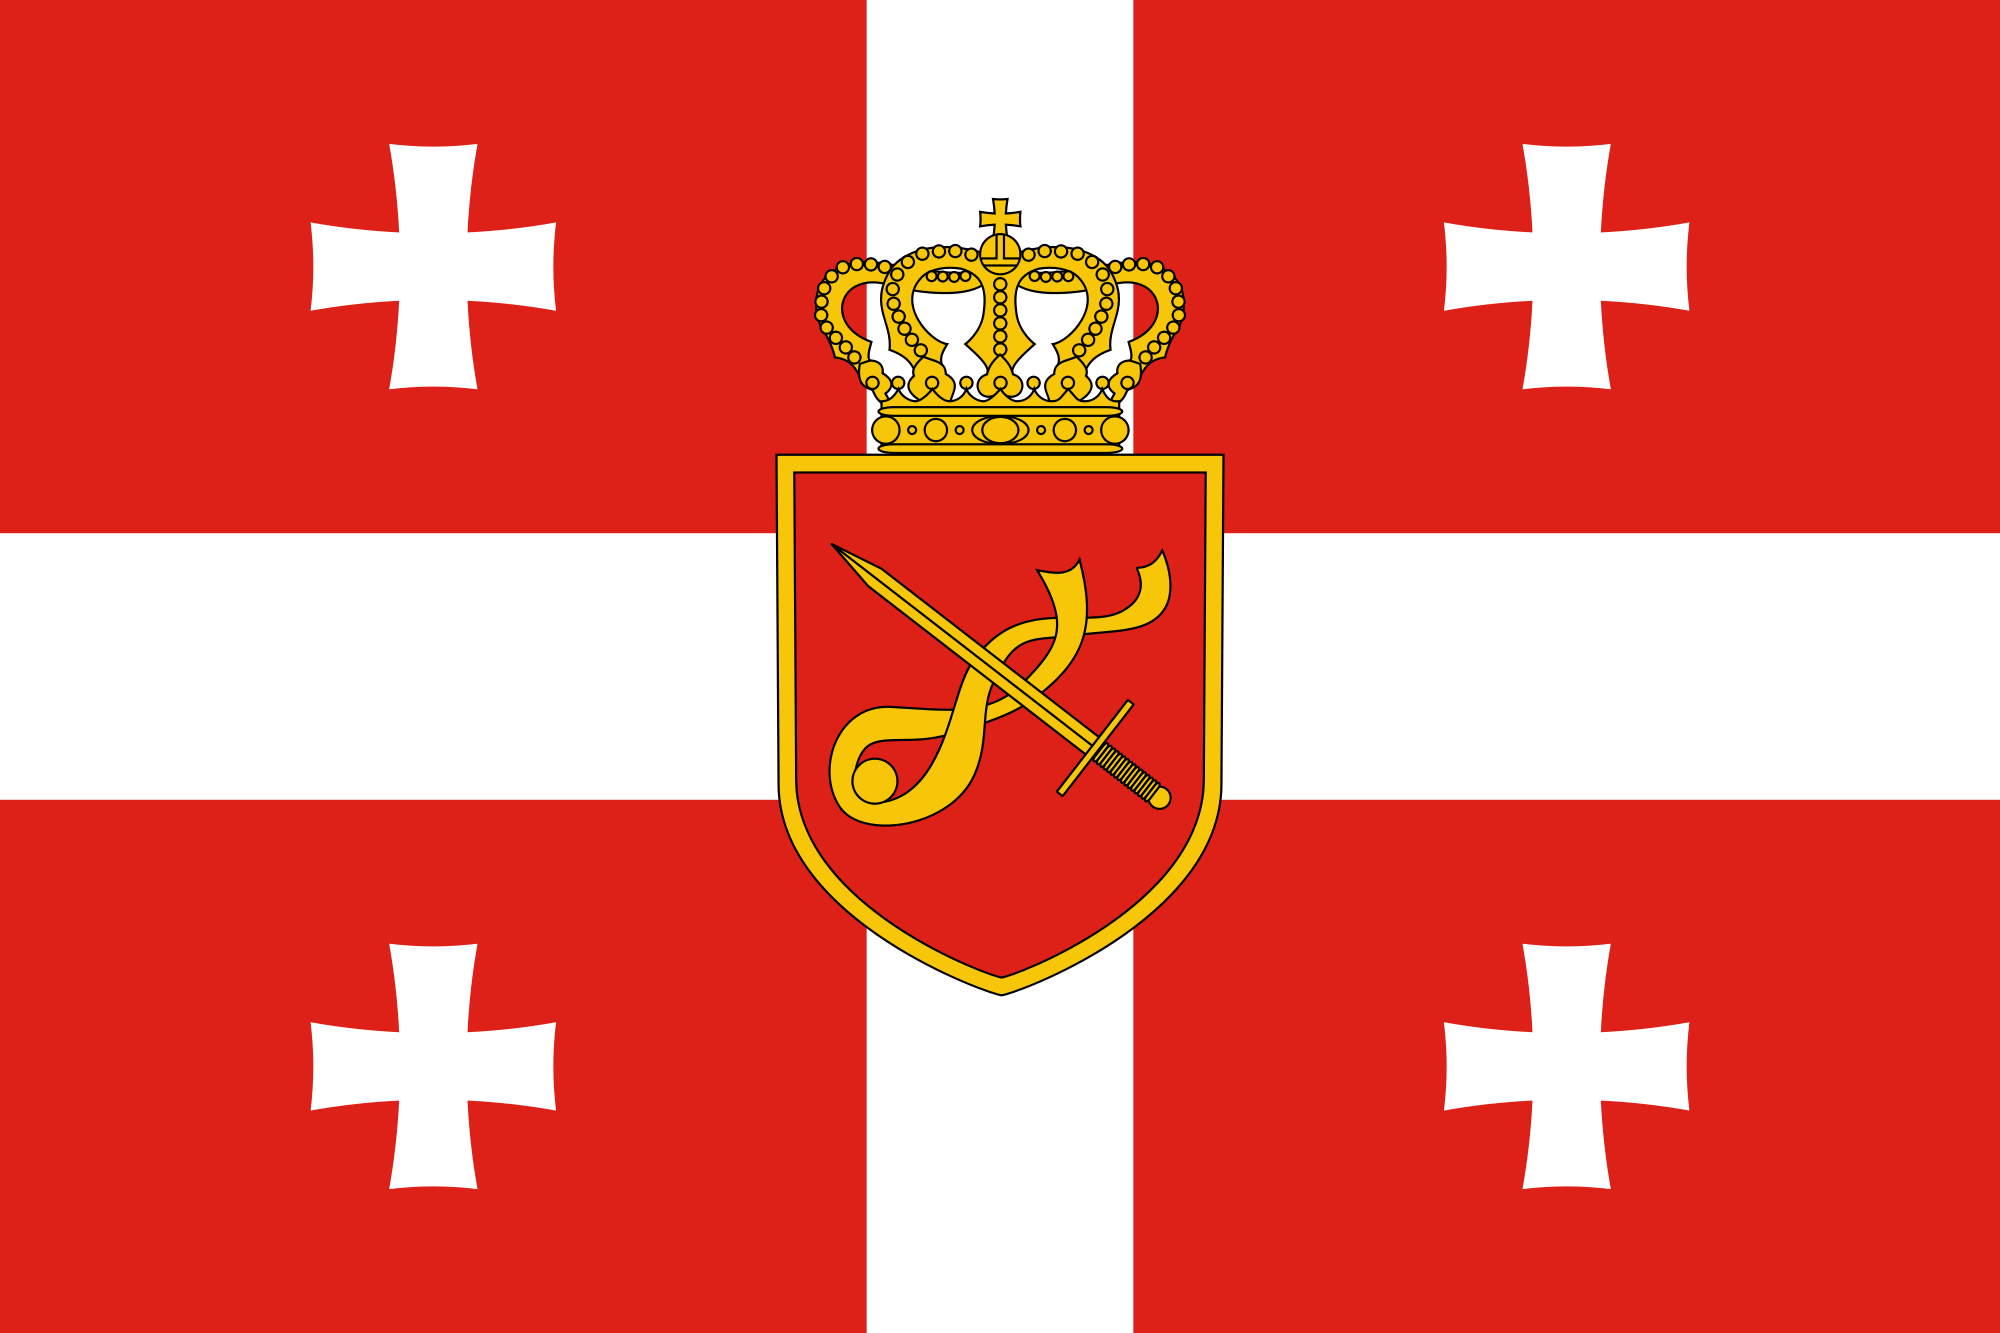 Georgia (War flag)